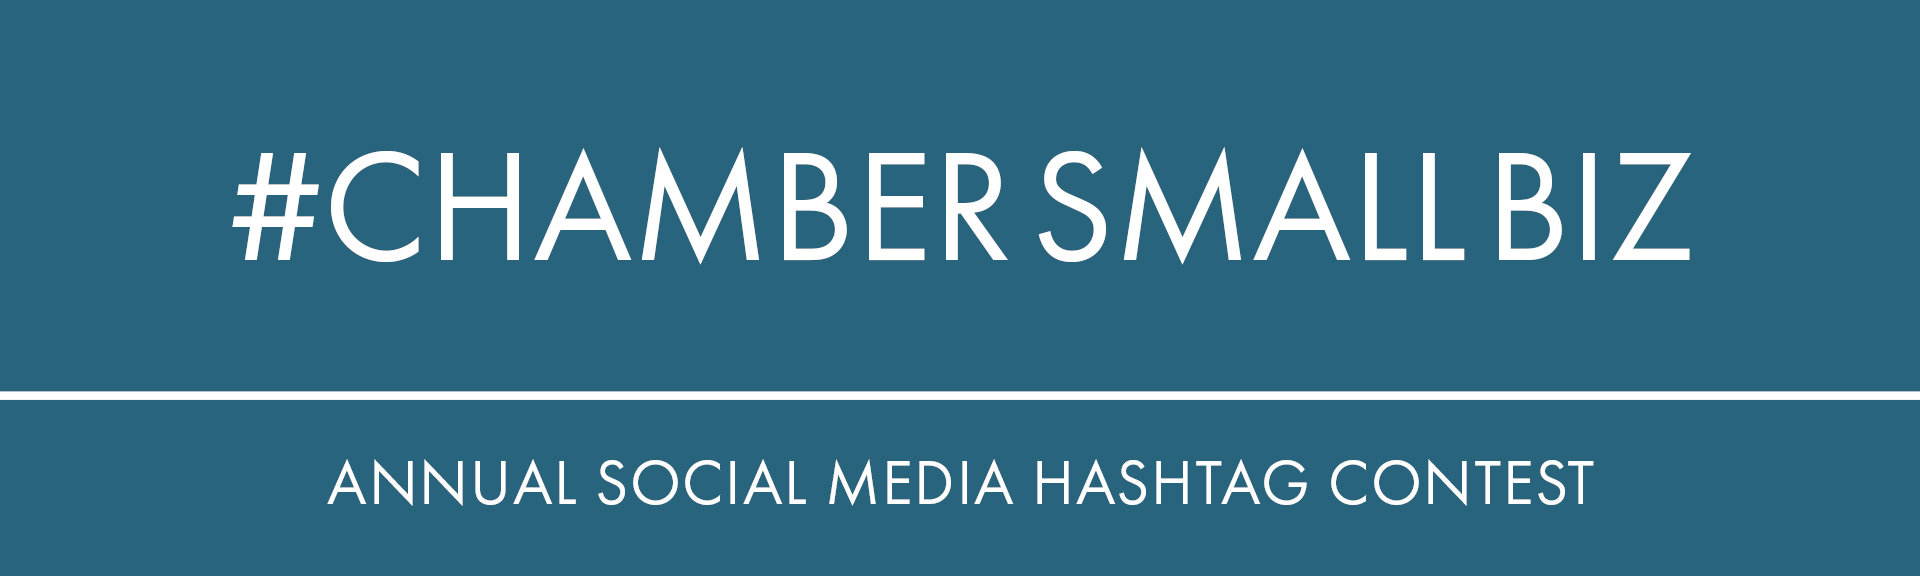 chamber small biz business saturday grant program annual social media hashtag contest SBAP GVCC local member members Columbia Credit Union #ChamberSmallBiz Greater Vancouver Chamber of Commerce